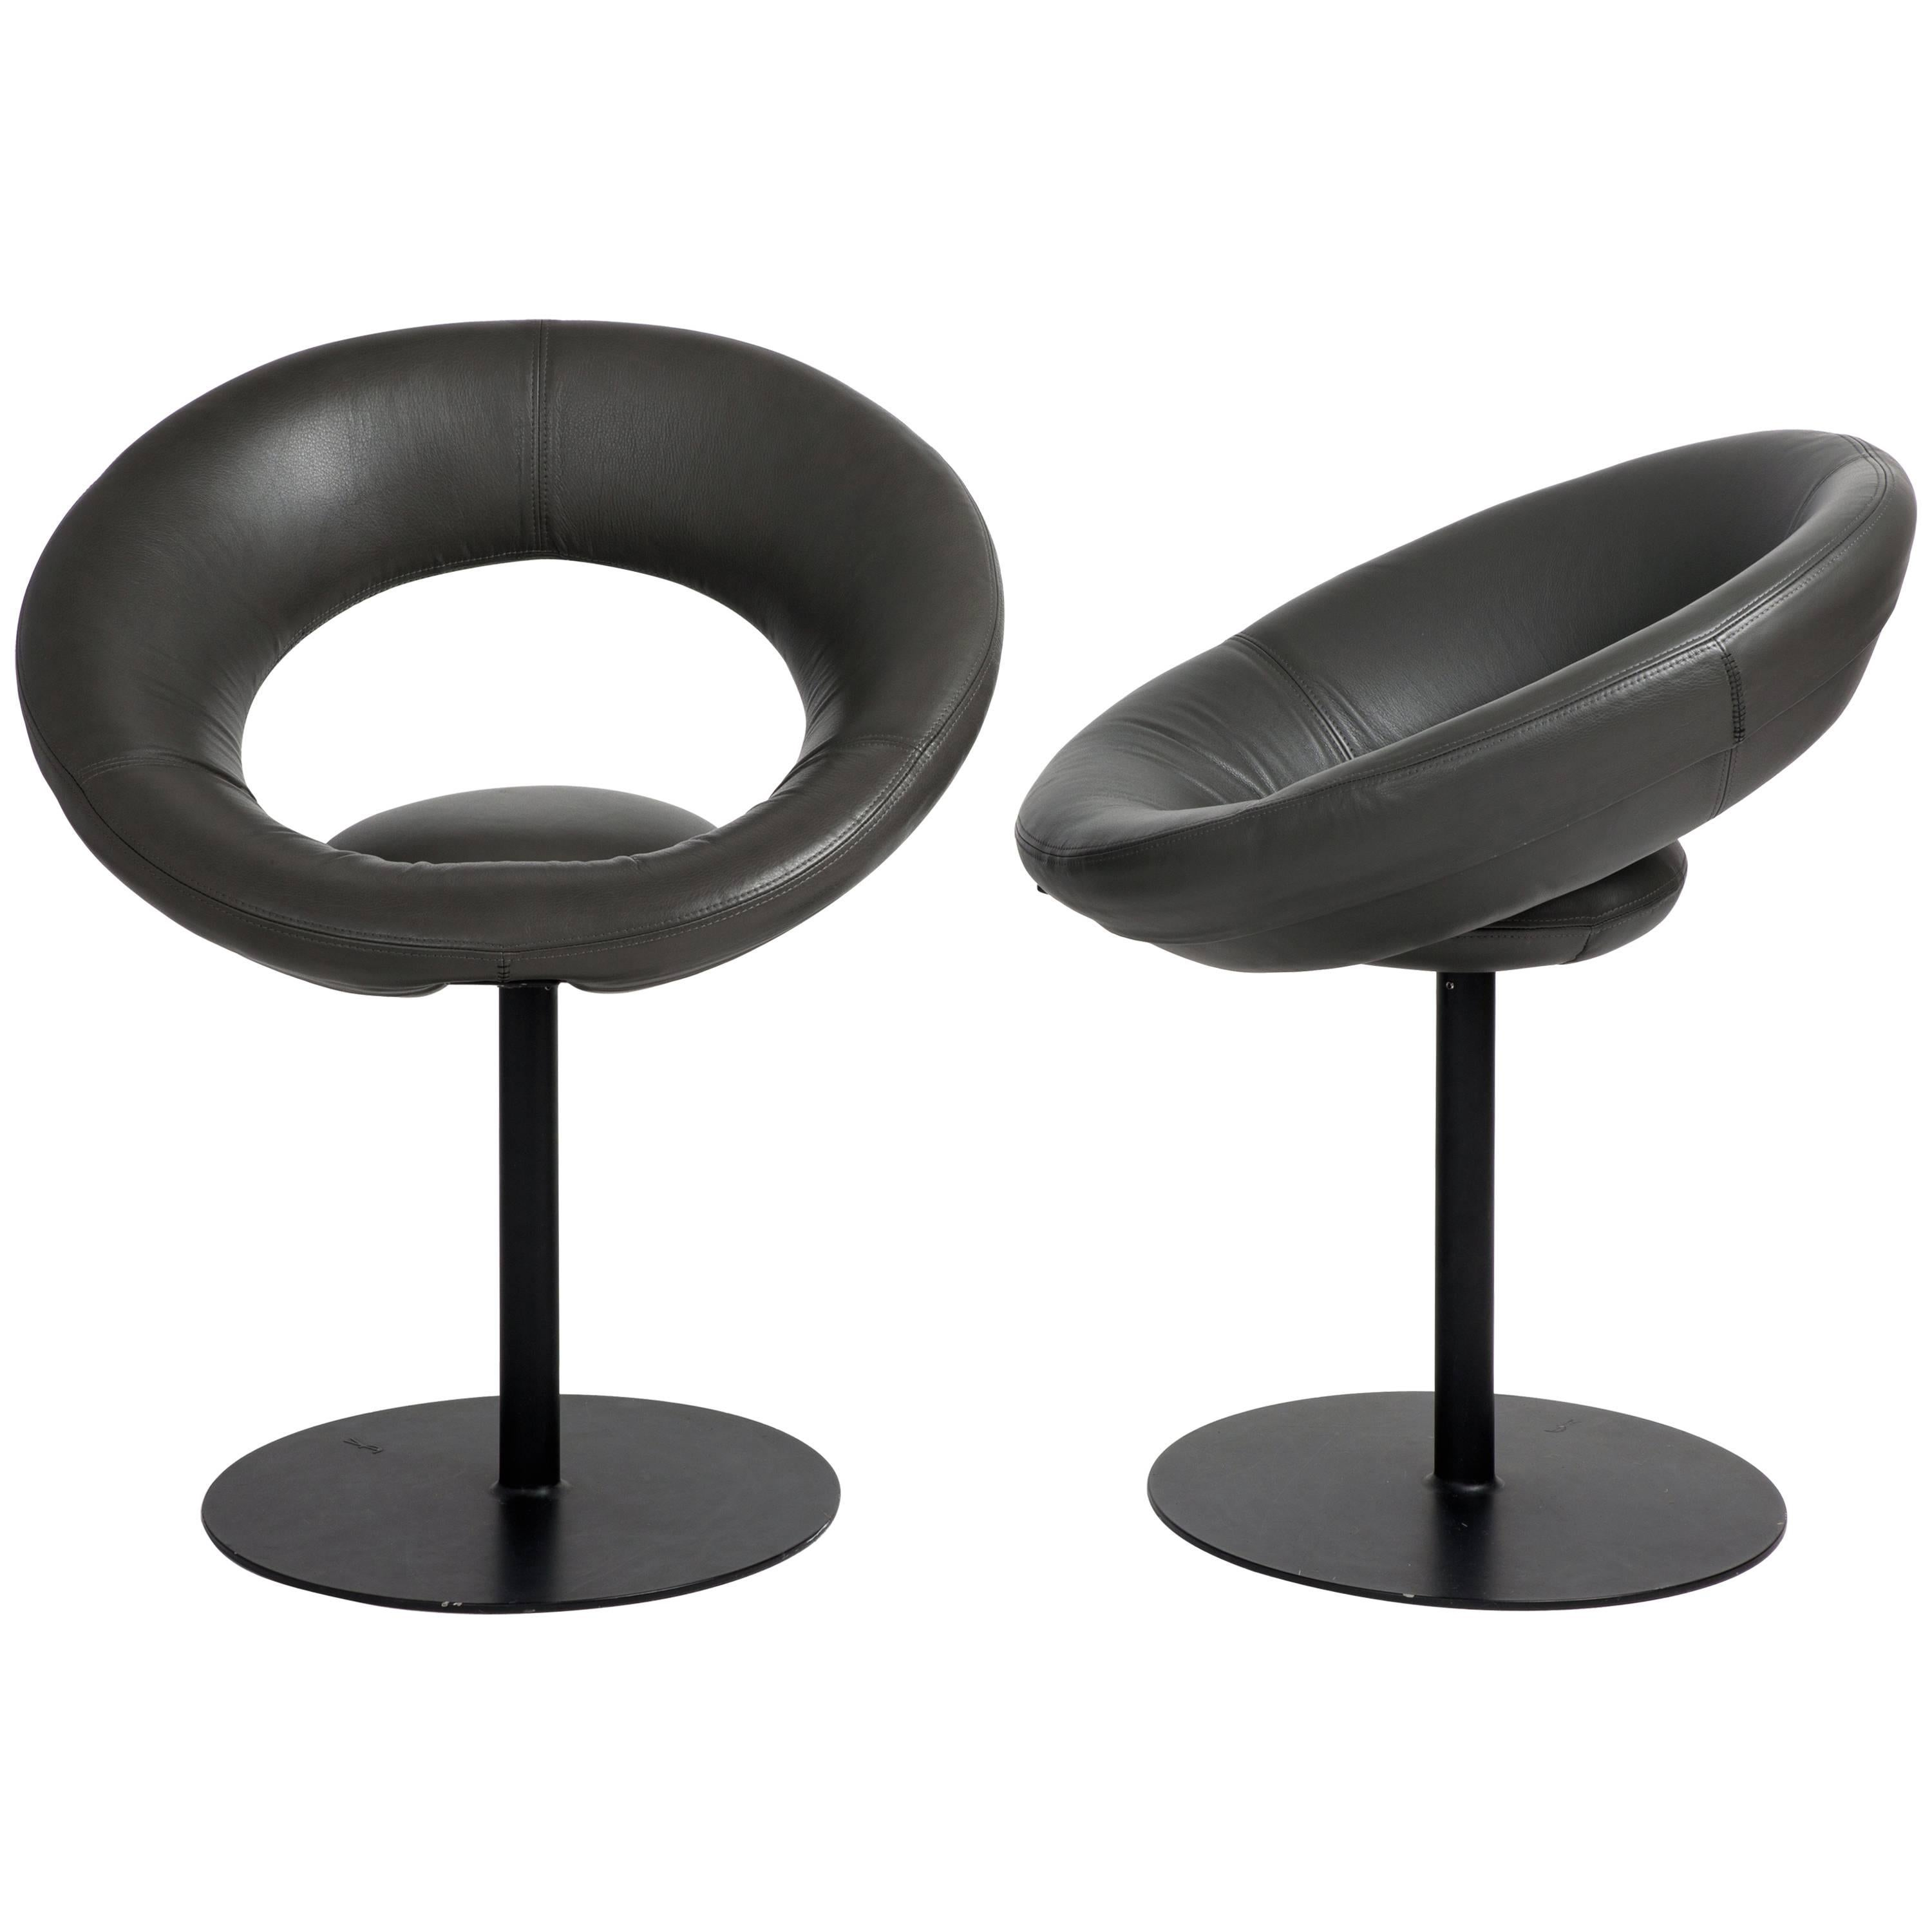 Ricardo Fasanello Anel Leather Dining Chairs, Set of Two